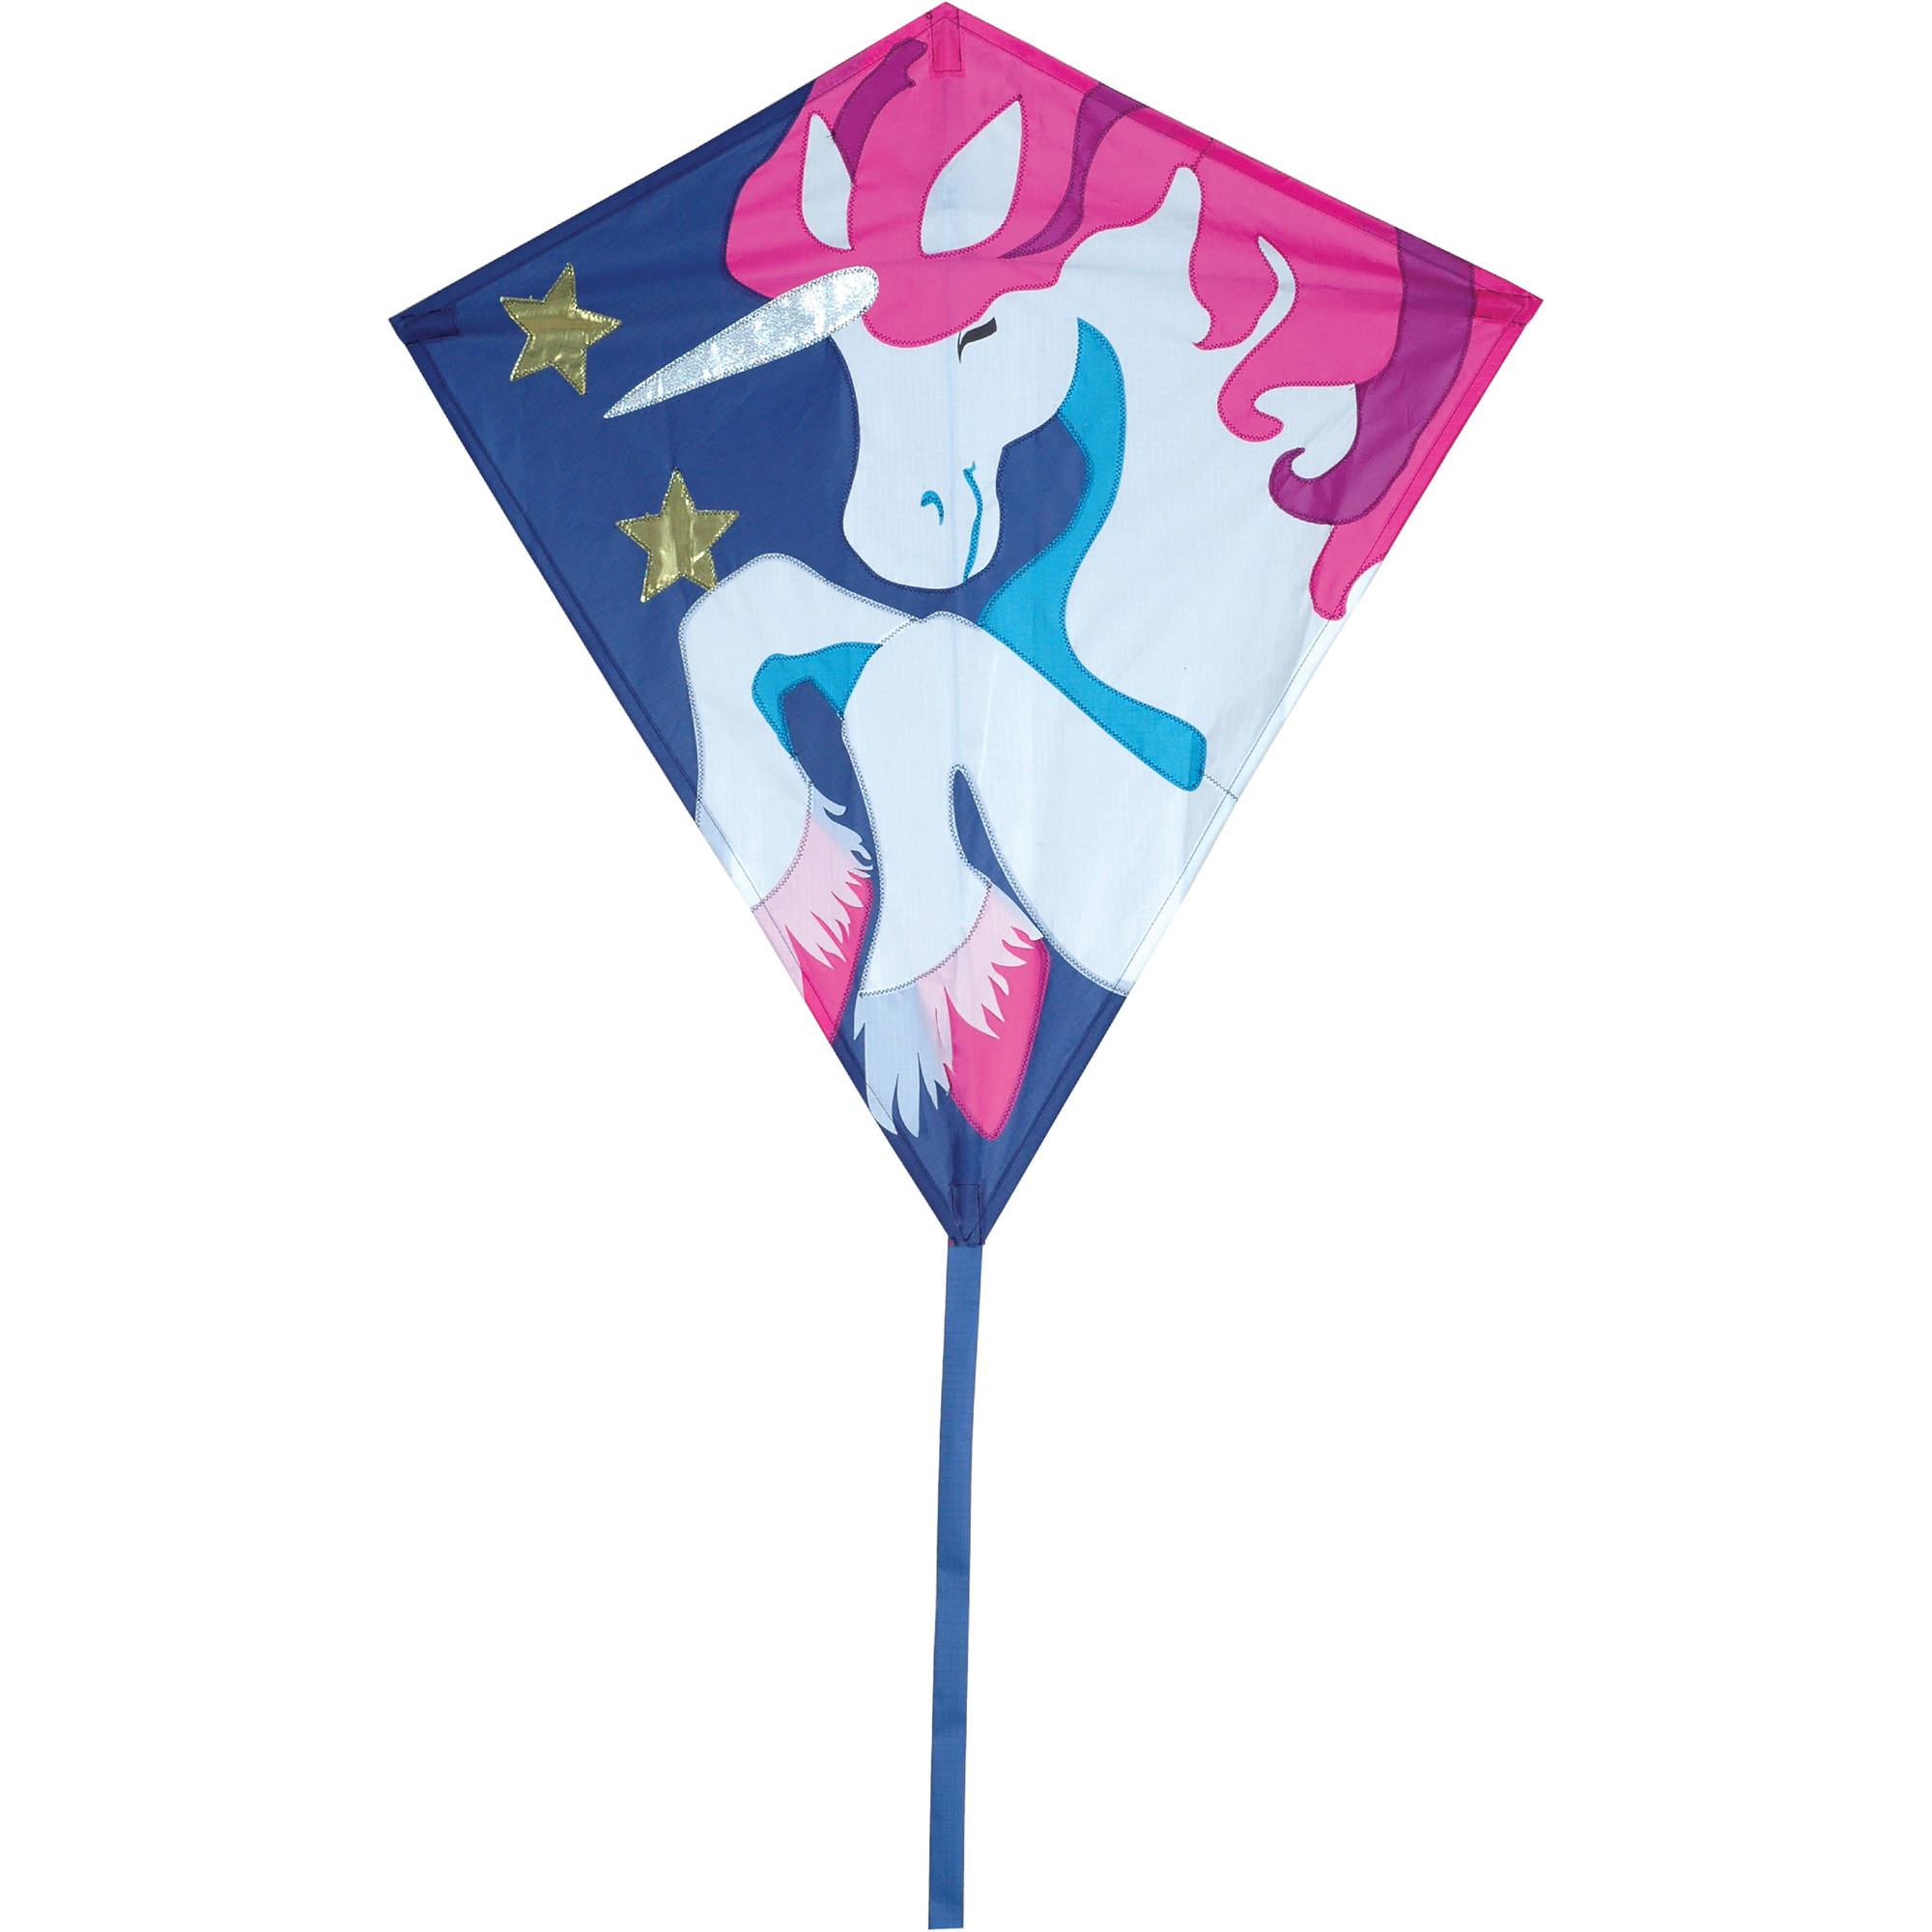 "Premier Designs 30"" Diamond Kite, Trixie Unicorn"